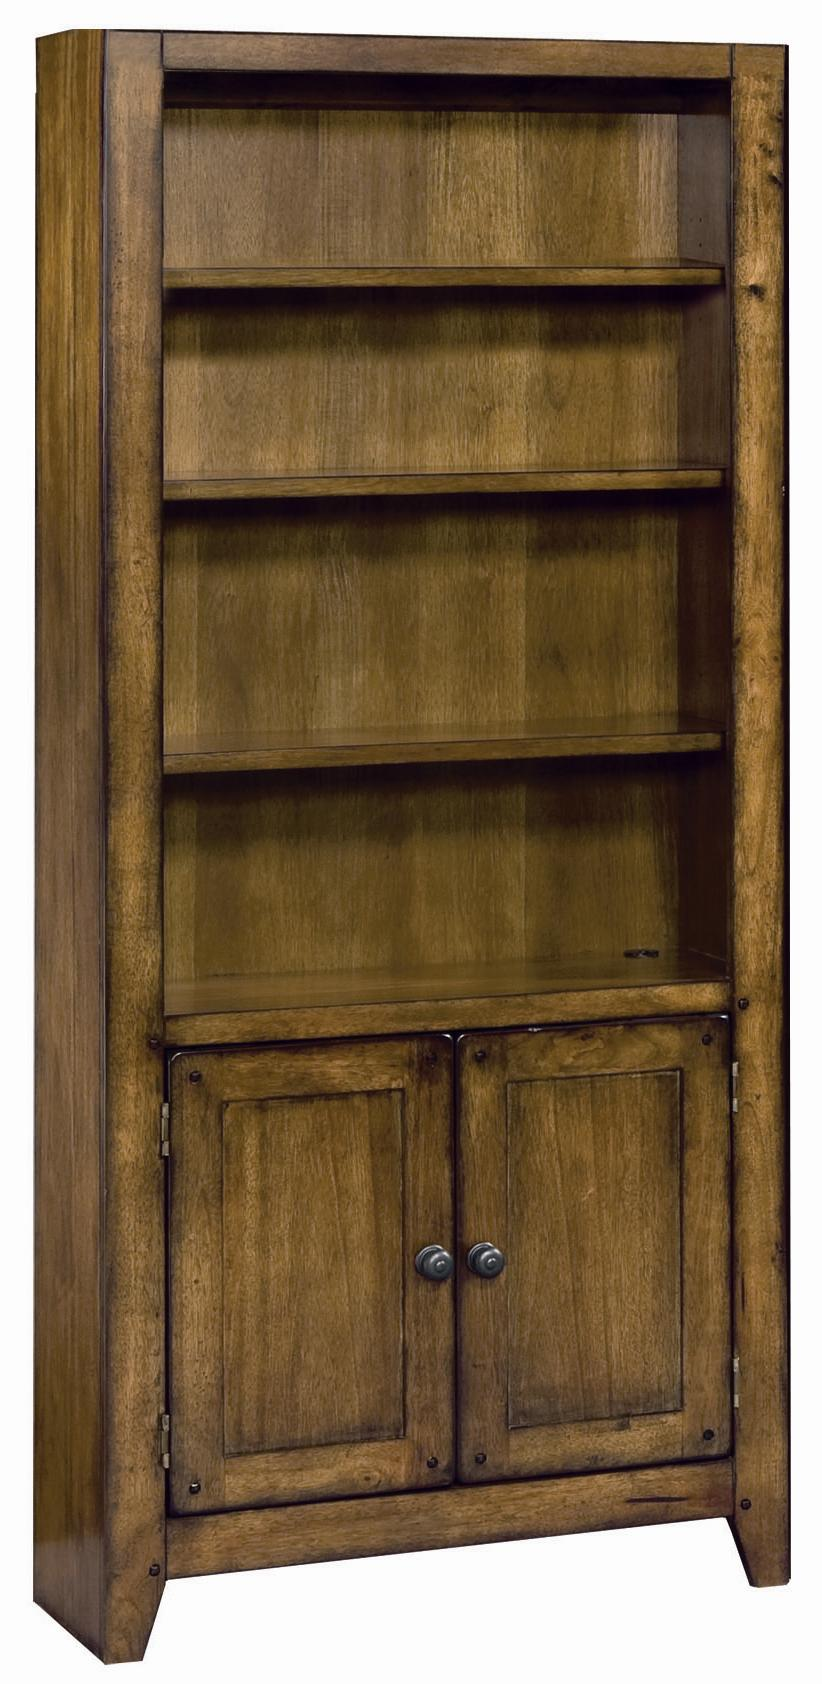 Aspenhome Cross Country Bookcase - Item Number: IMR-332